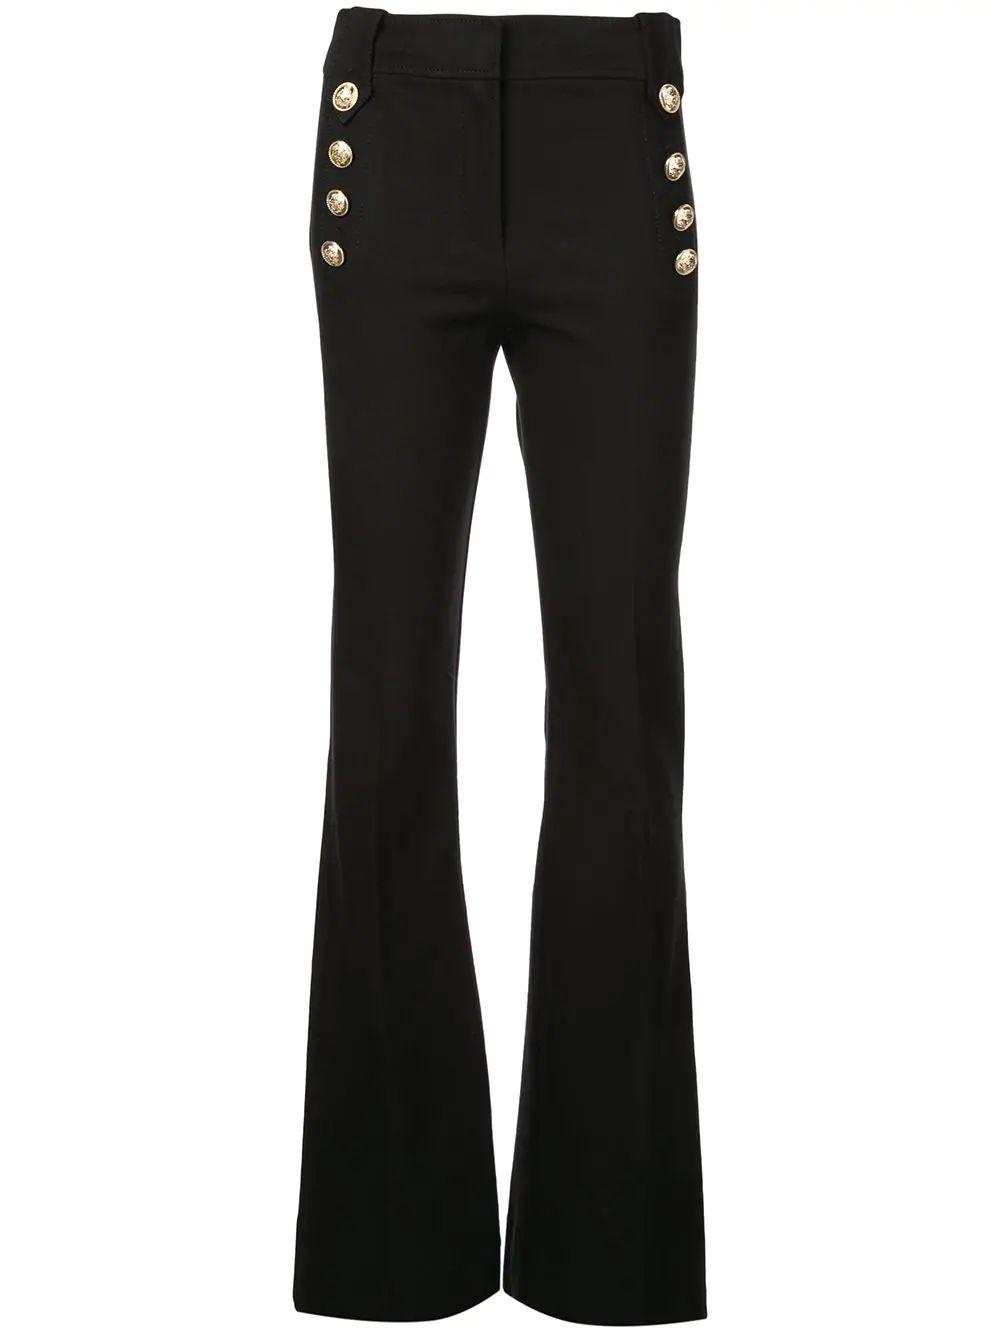 Robertson Flare Trouser